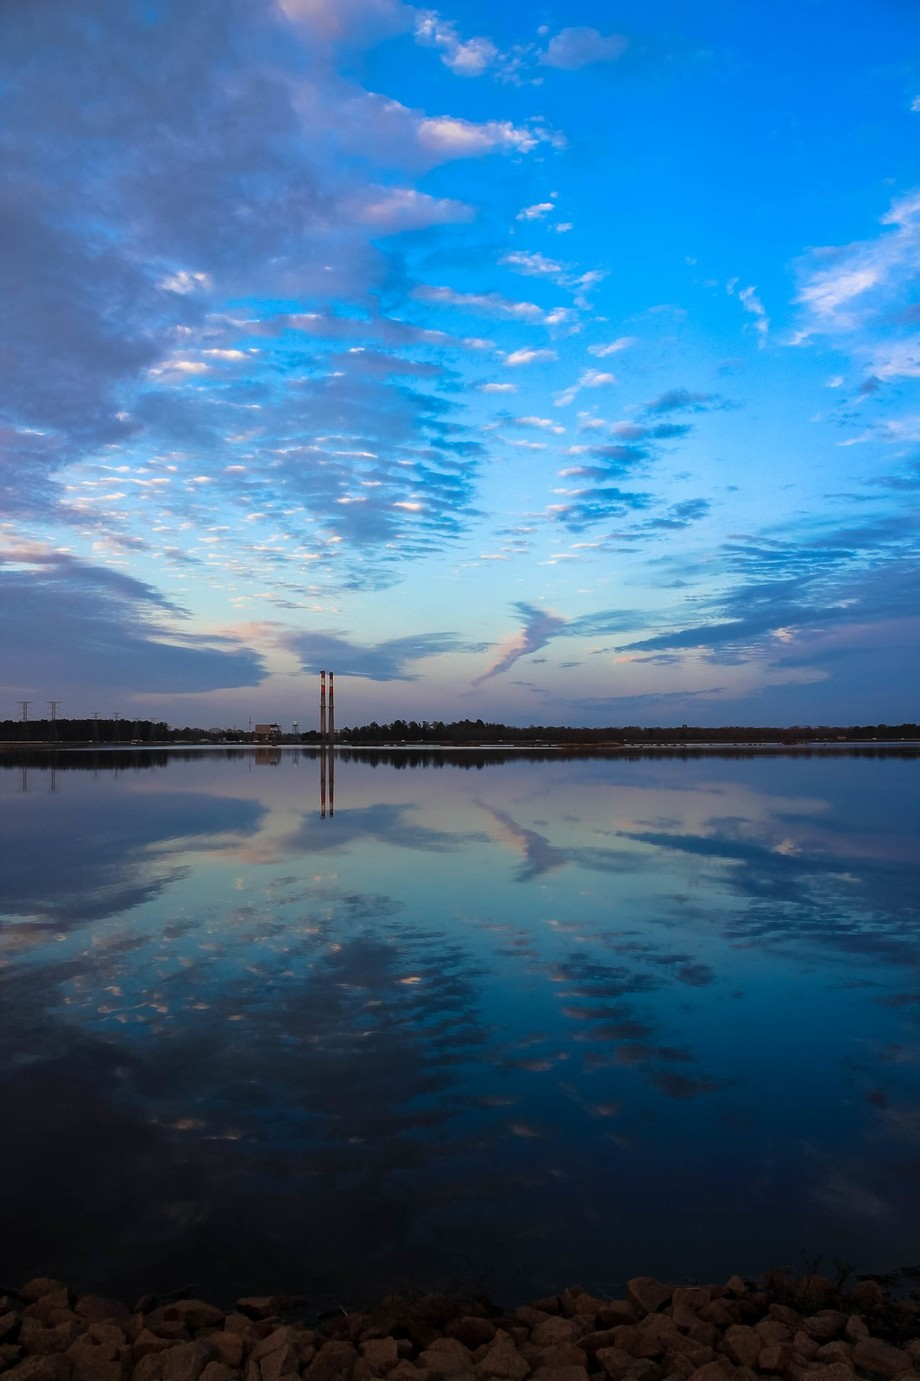 IMG_4291-2 by aprillewis - Energy Photo Contest